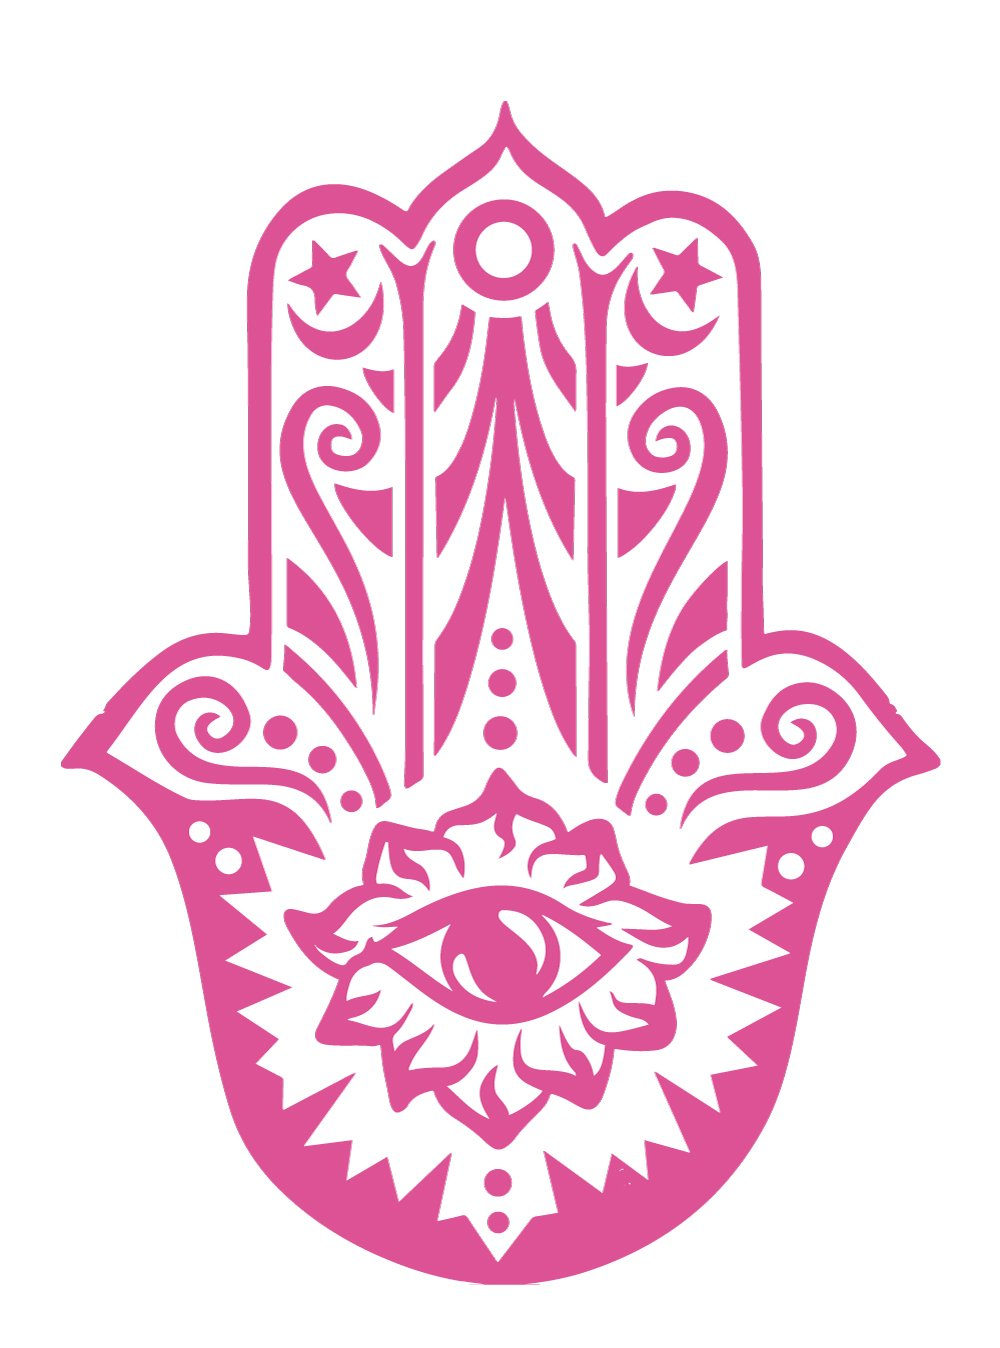 The hamsa hand the hand of fatima symbol and its meaning the hamsa hand the hand of fatima symbol and its meaning biocorpaavc